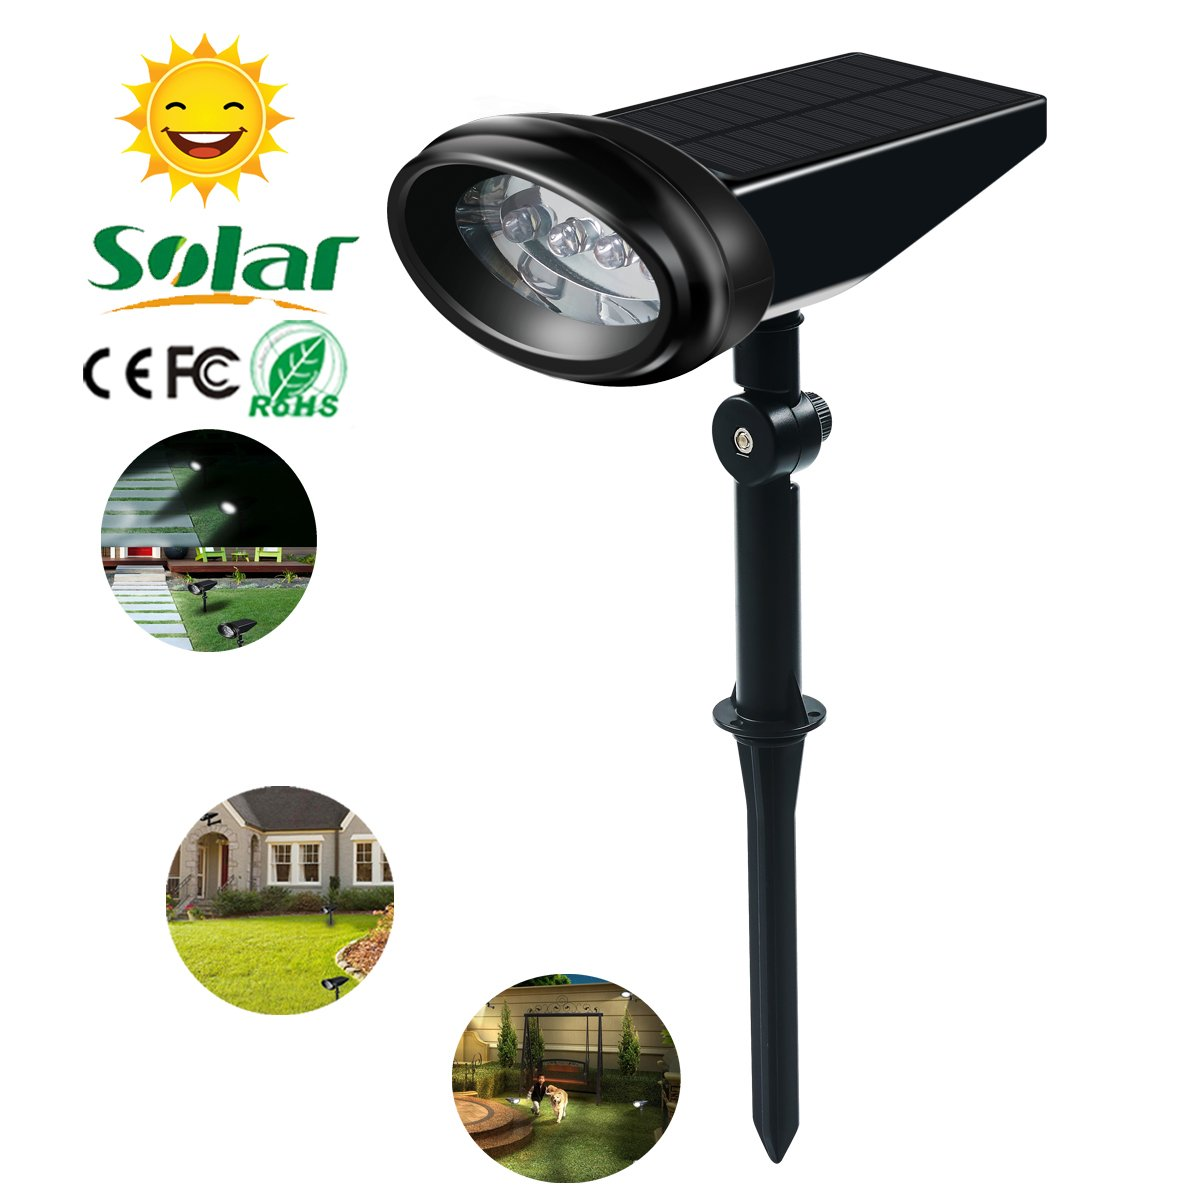 Solar LED Spotlight 2-in-1 Waterproof 4 LED Solar Landscape Lights Dusk to Dawn Outdoor Solar Spotlight Auto On/Off Night Light for Patio, Driveway, Yard, Garden by LUXON